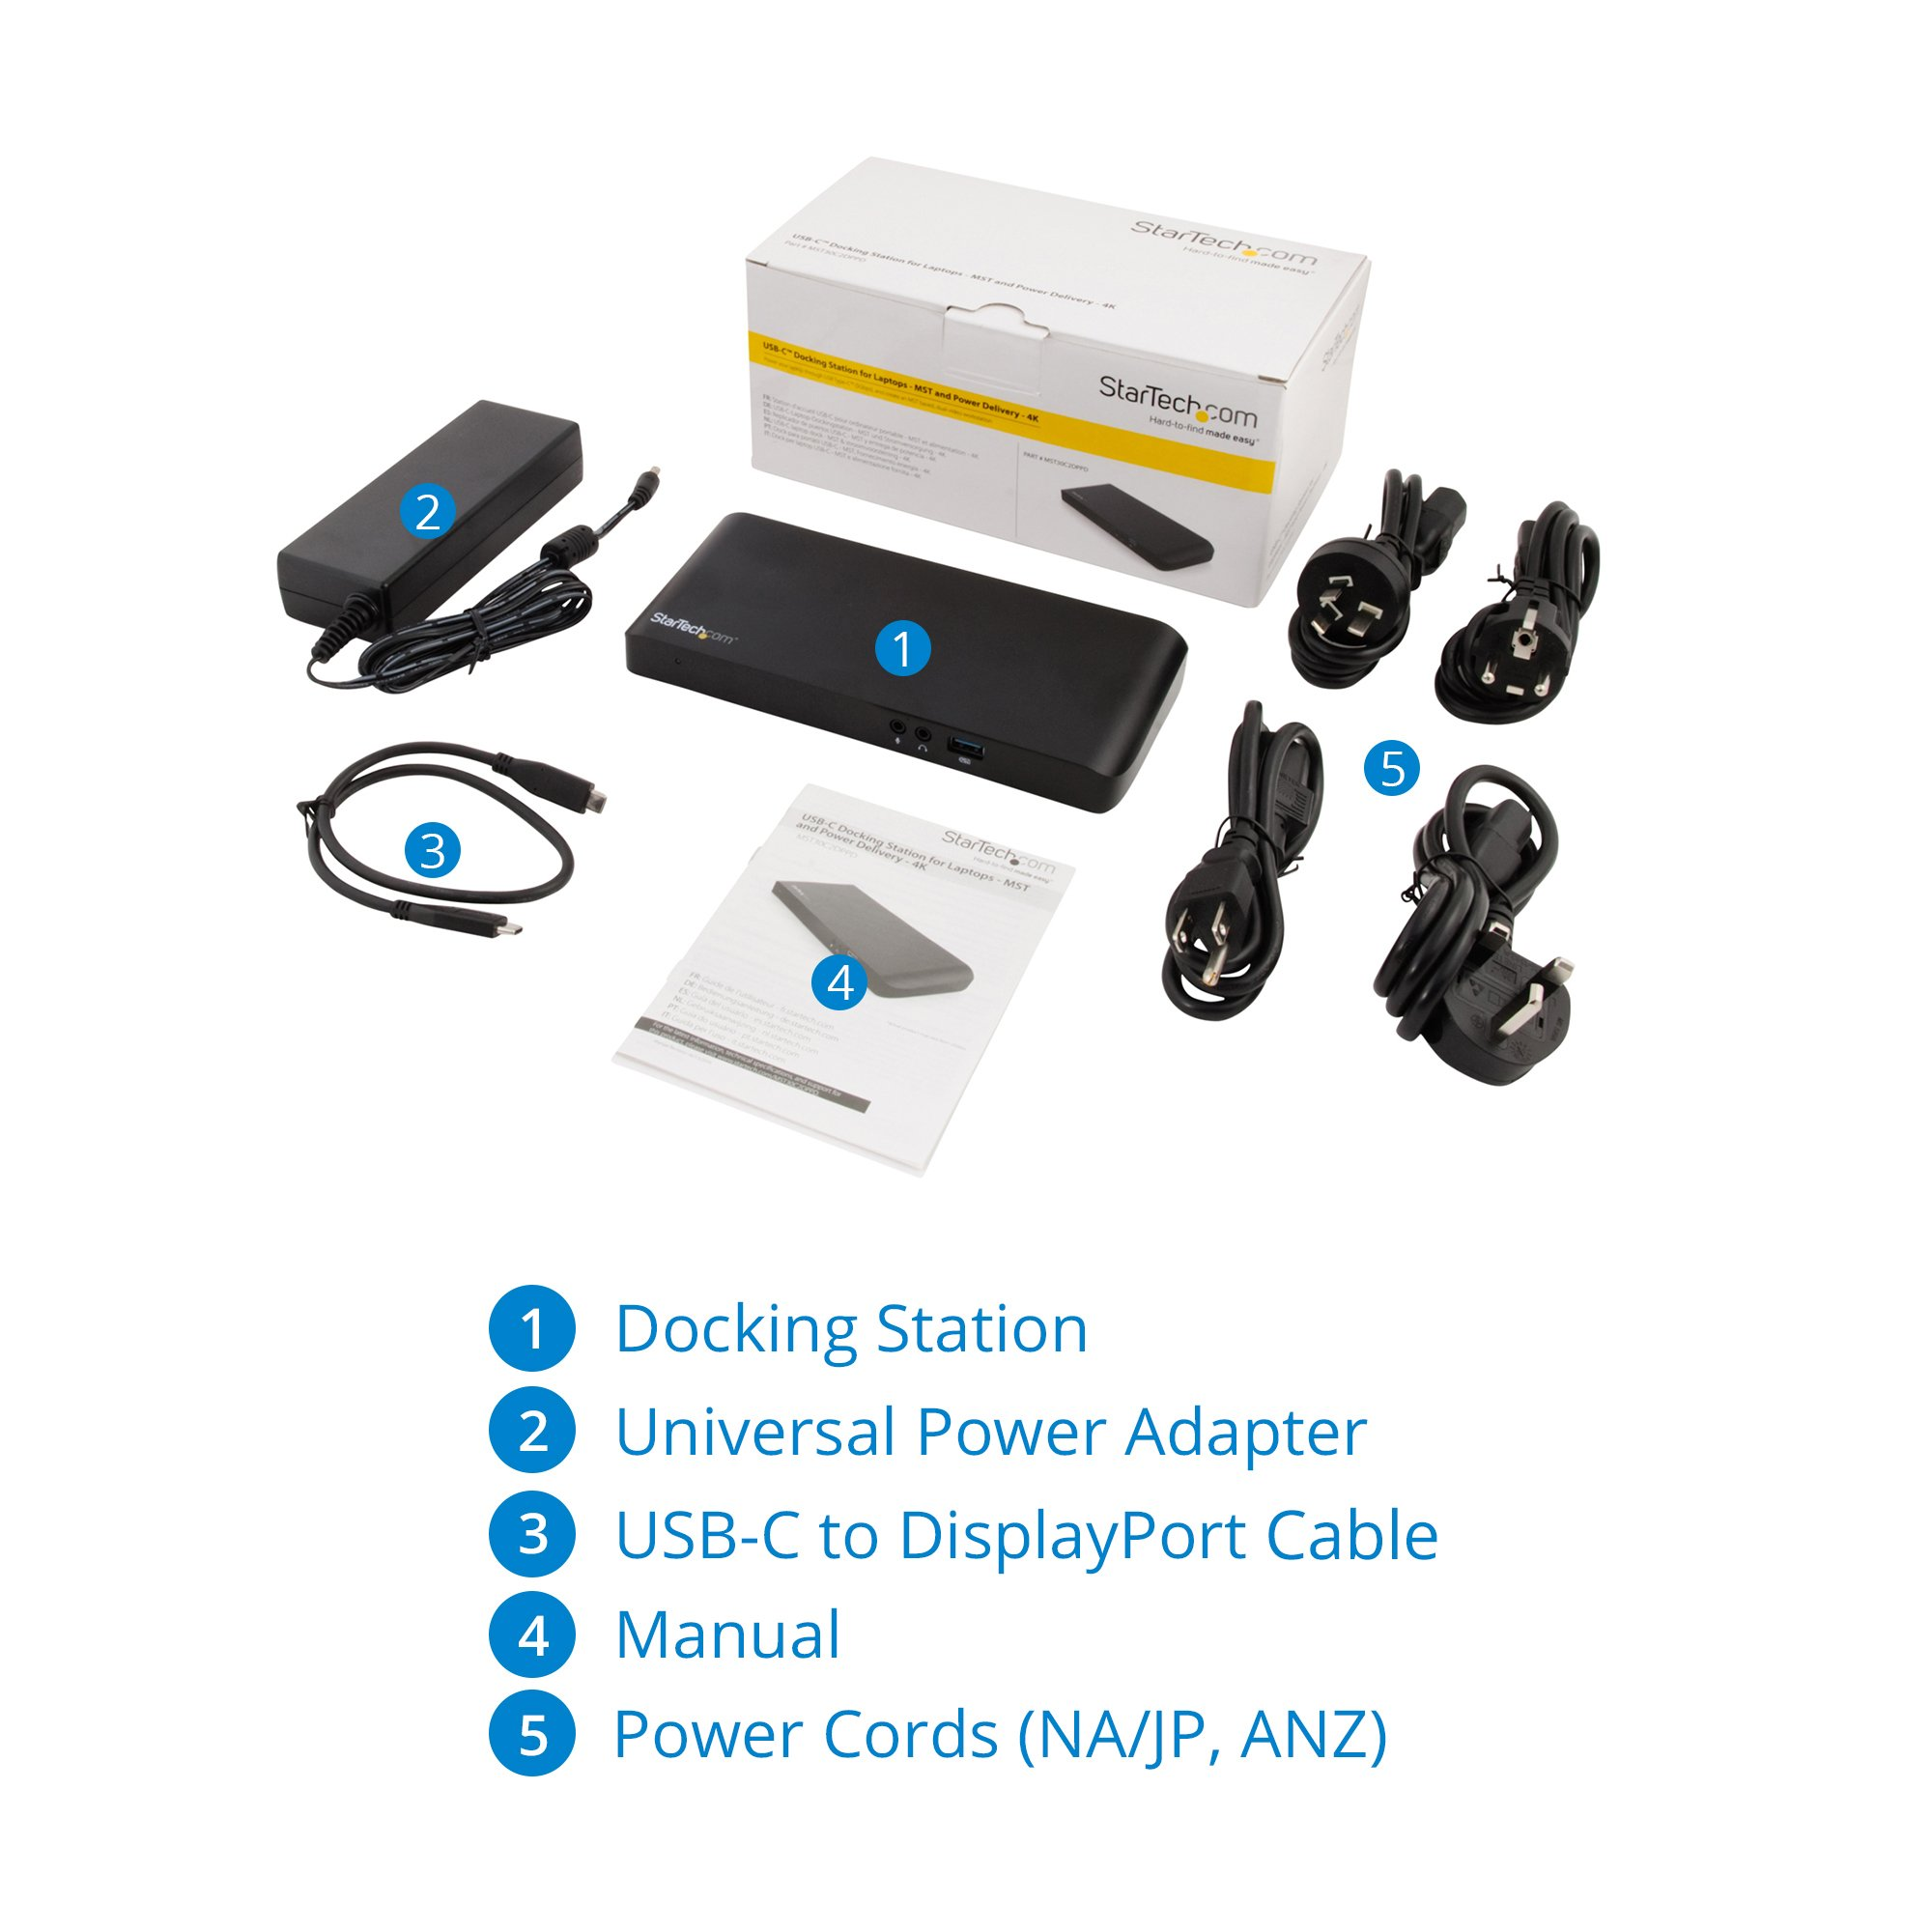 StarTech.com MST30C2DPPD USB C Dock - 4K - USB C to HDMI and DisplayPort - with Power Delivery (USB PD) - Laptop Docking Station by StarTech (Image #6)